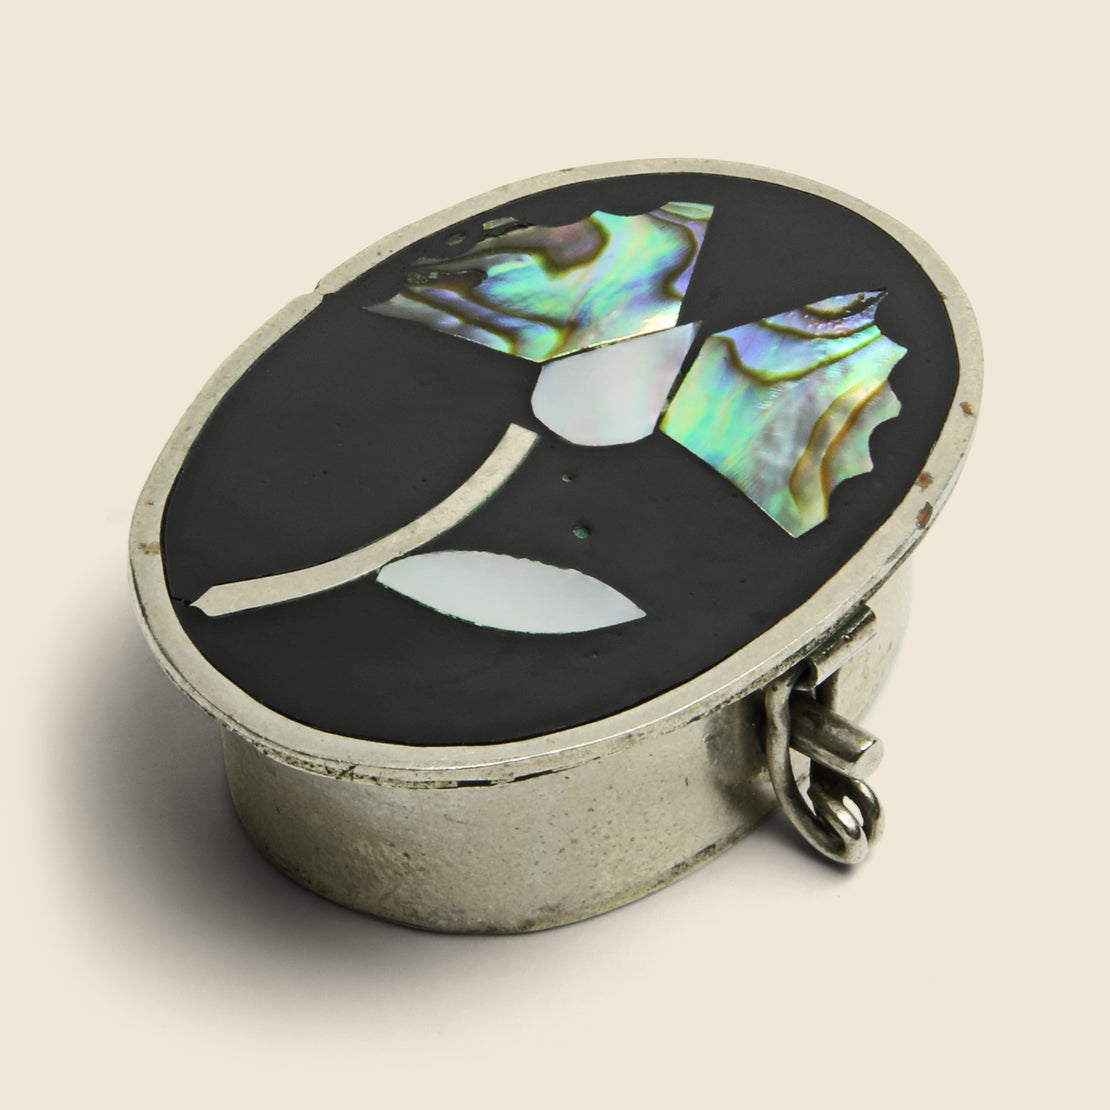 Flower Inlay Pill Box - Silver/Onyx/Pearl